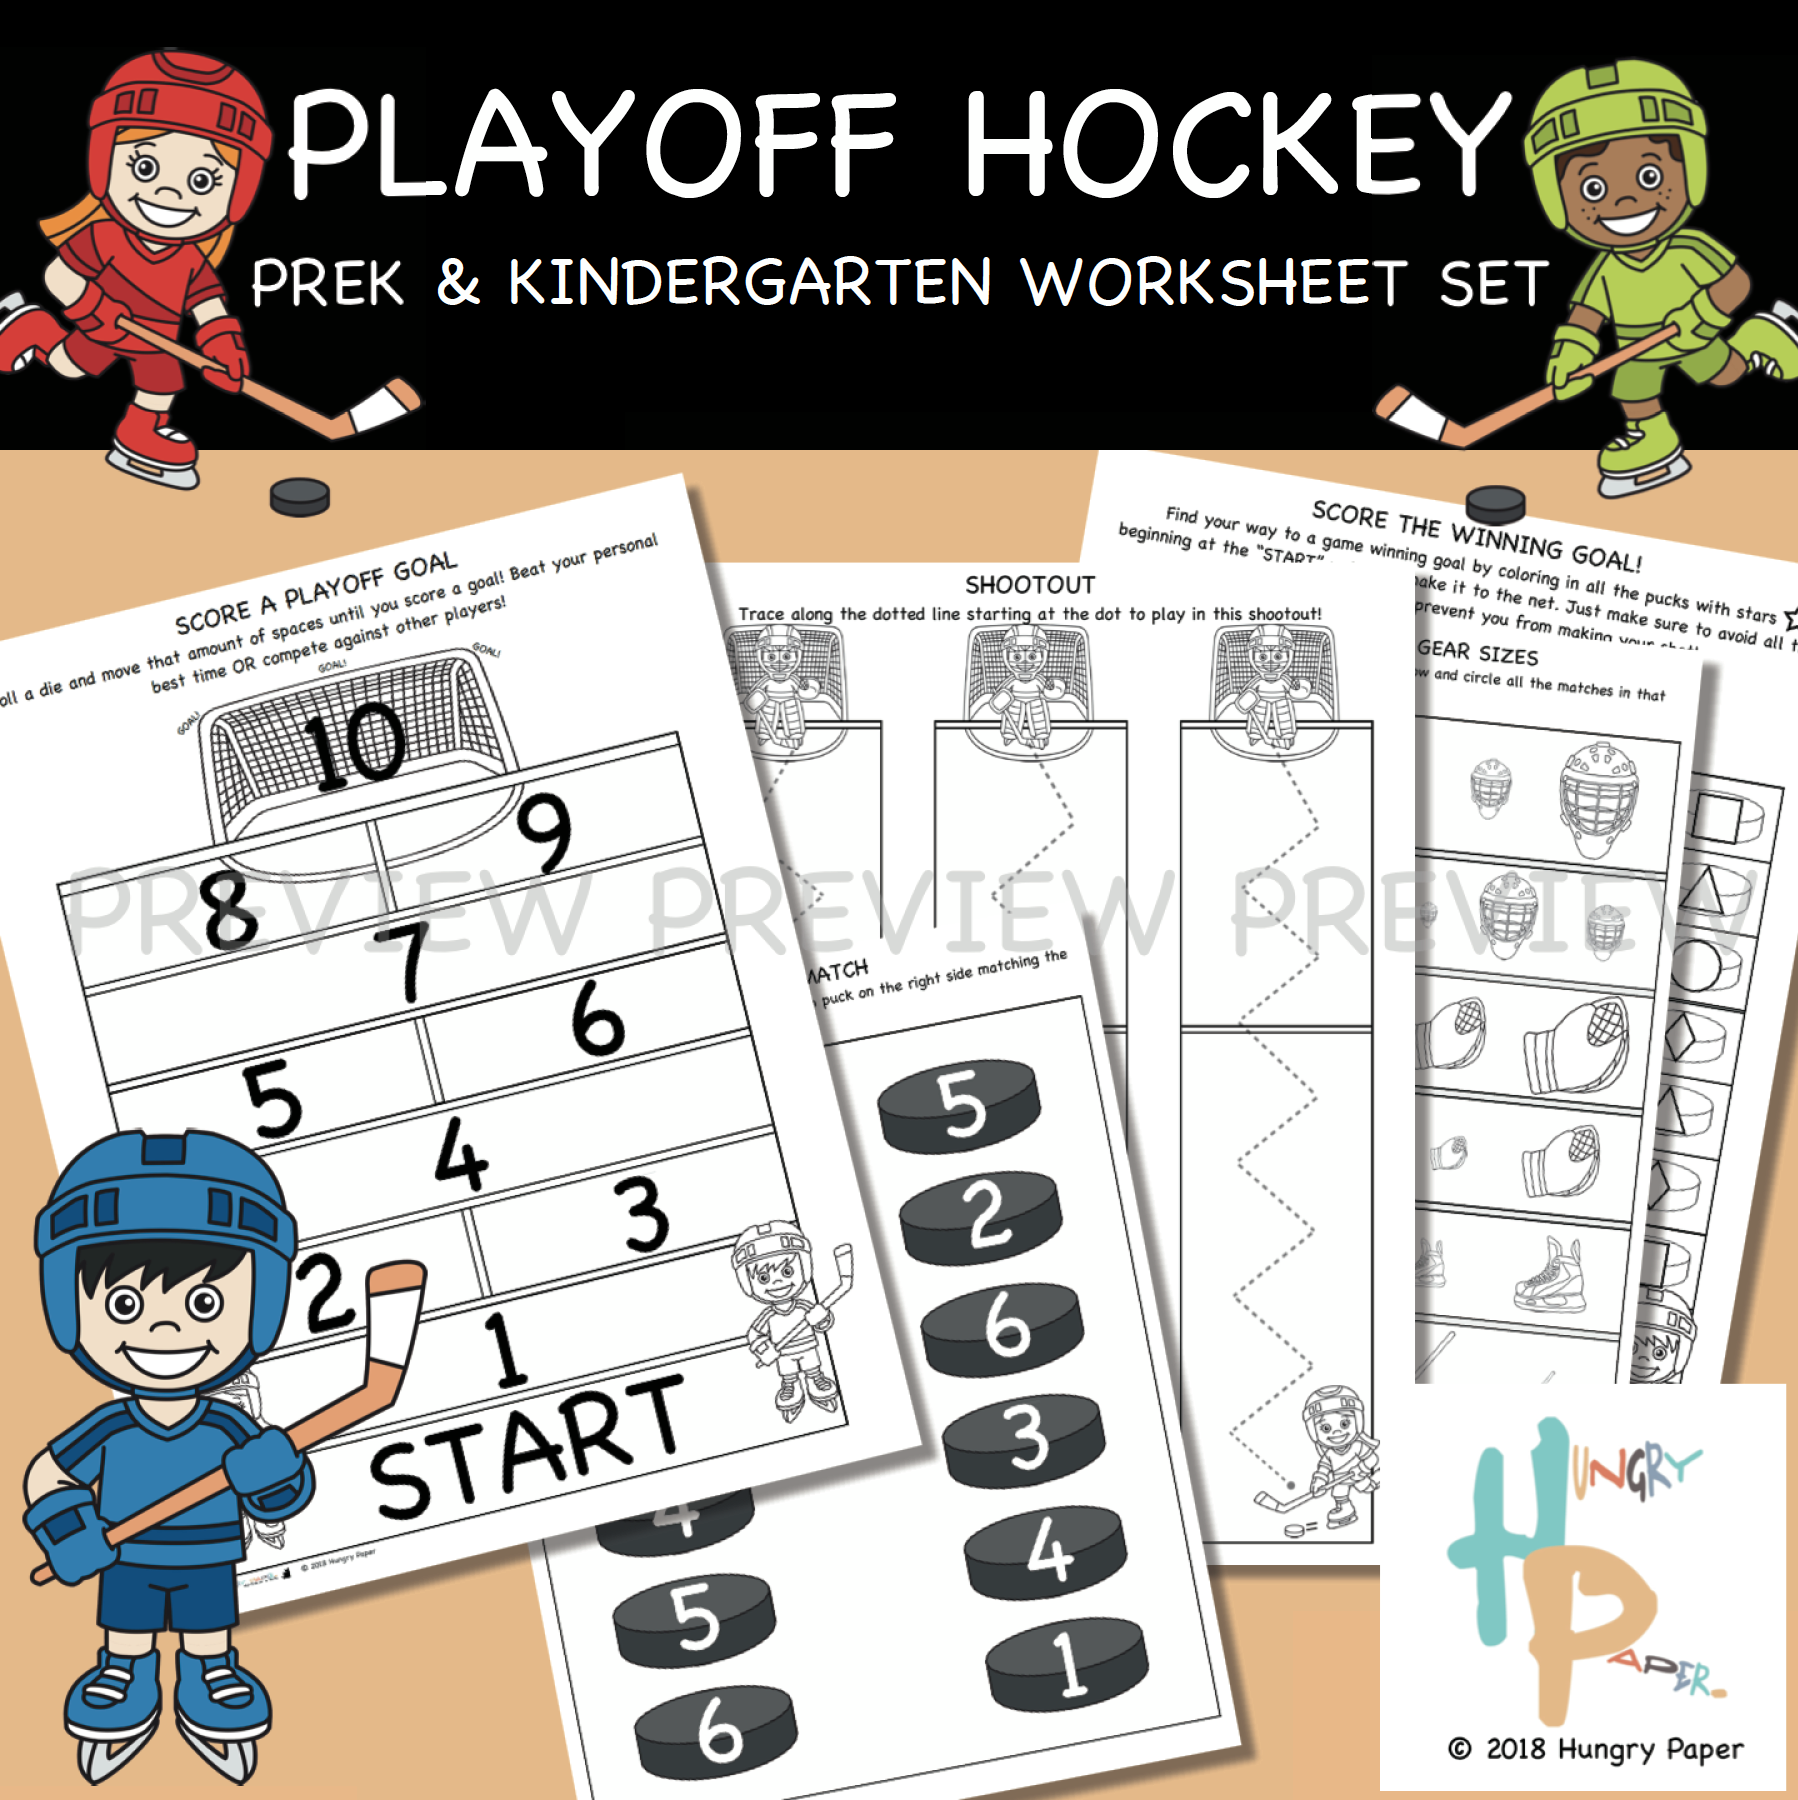 Playoff Hockey Prek Amp Kindergarten Worksheet Set